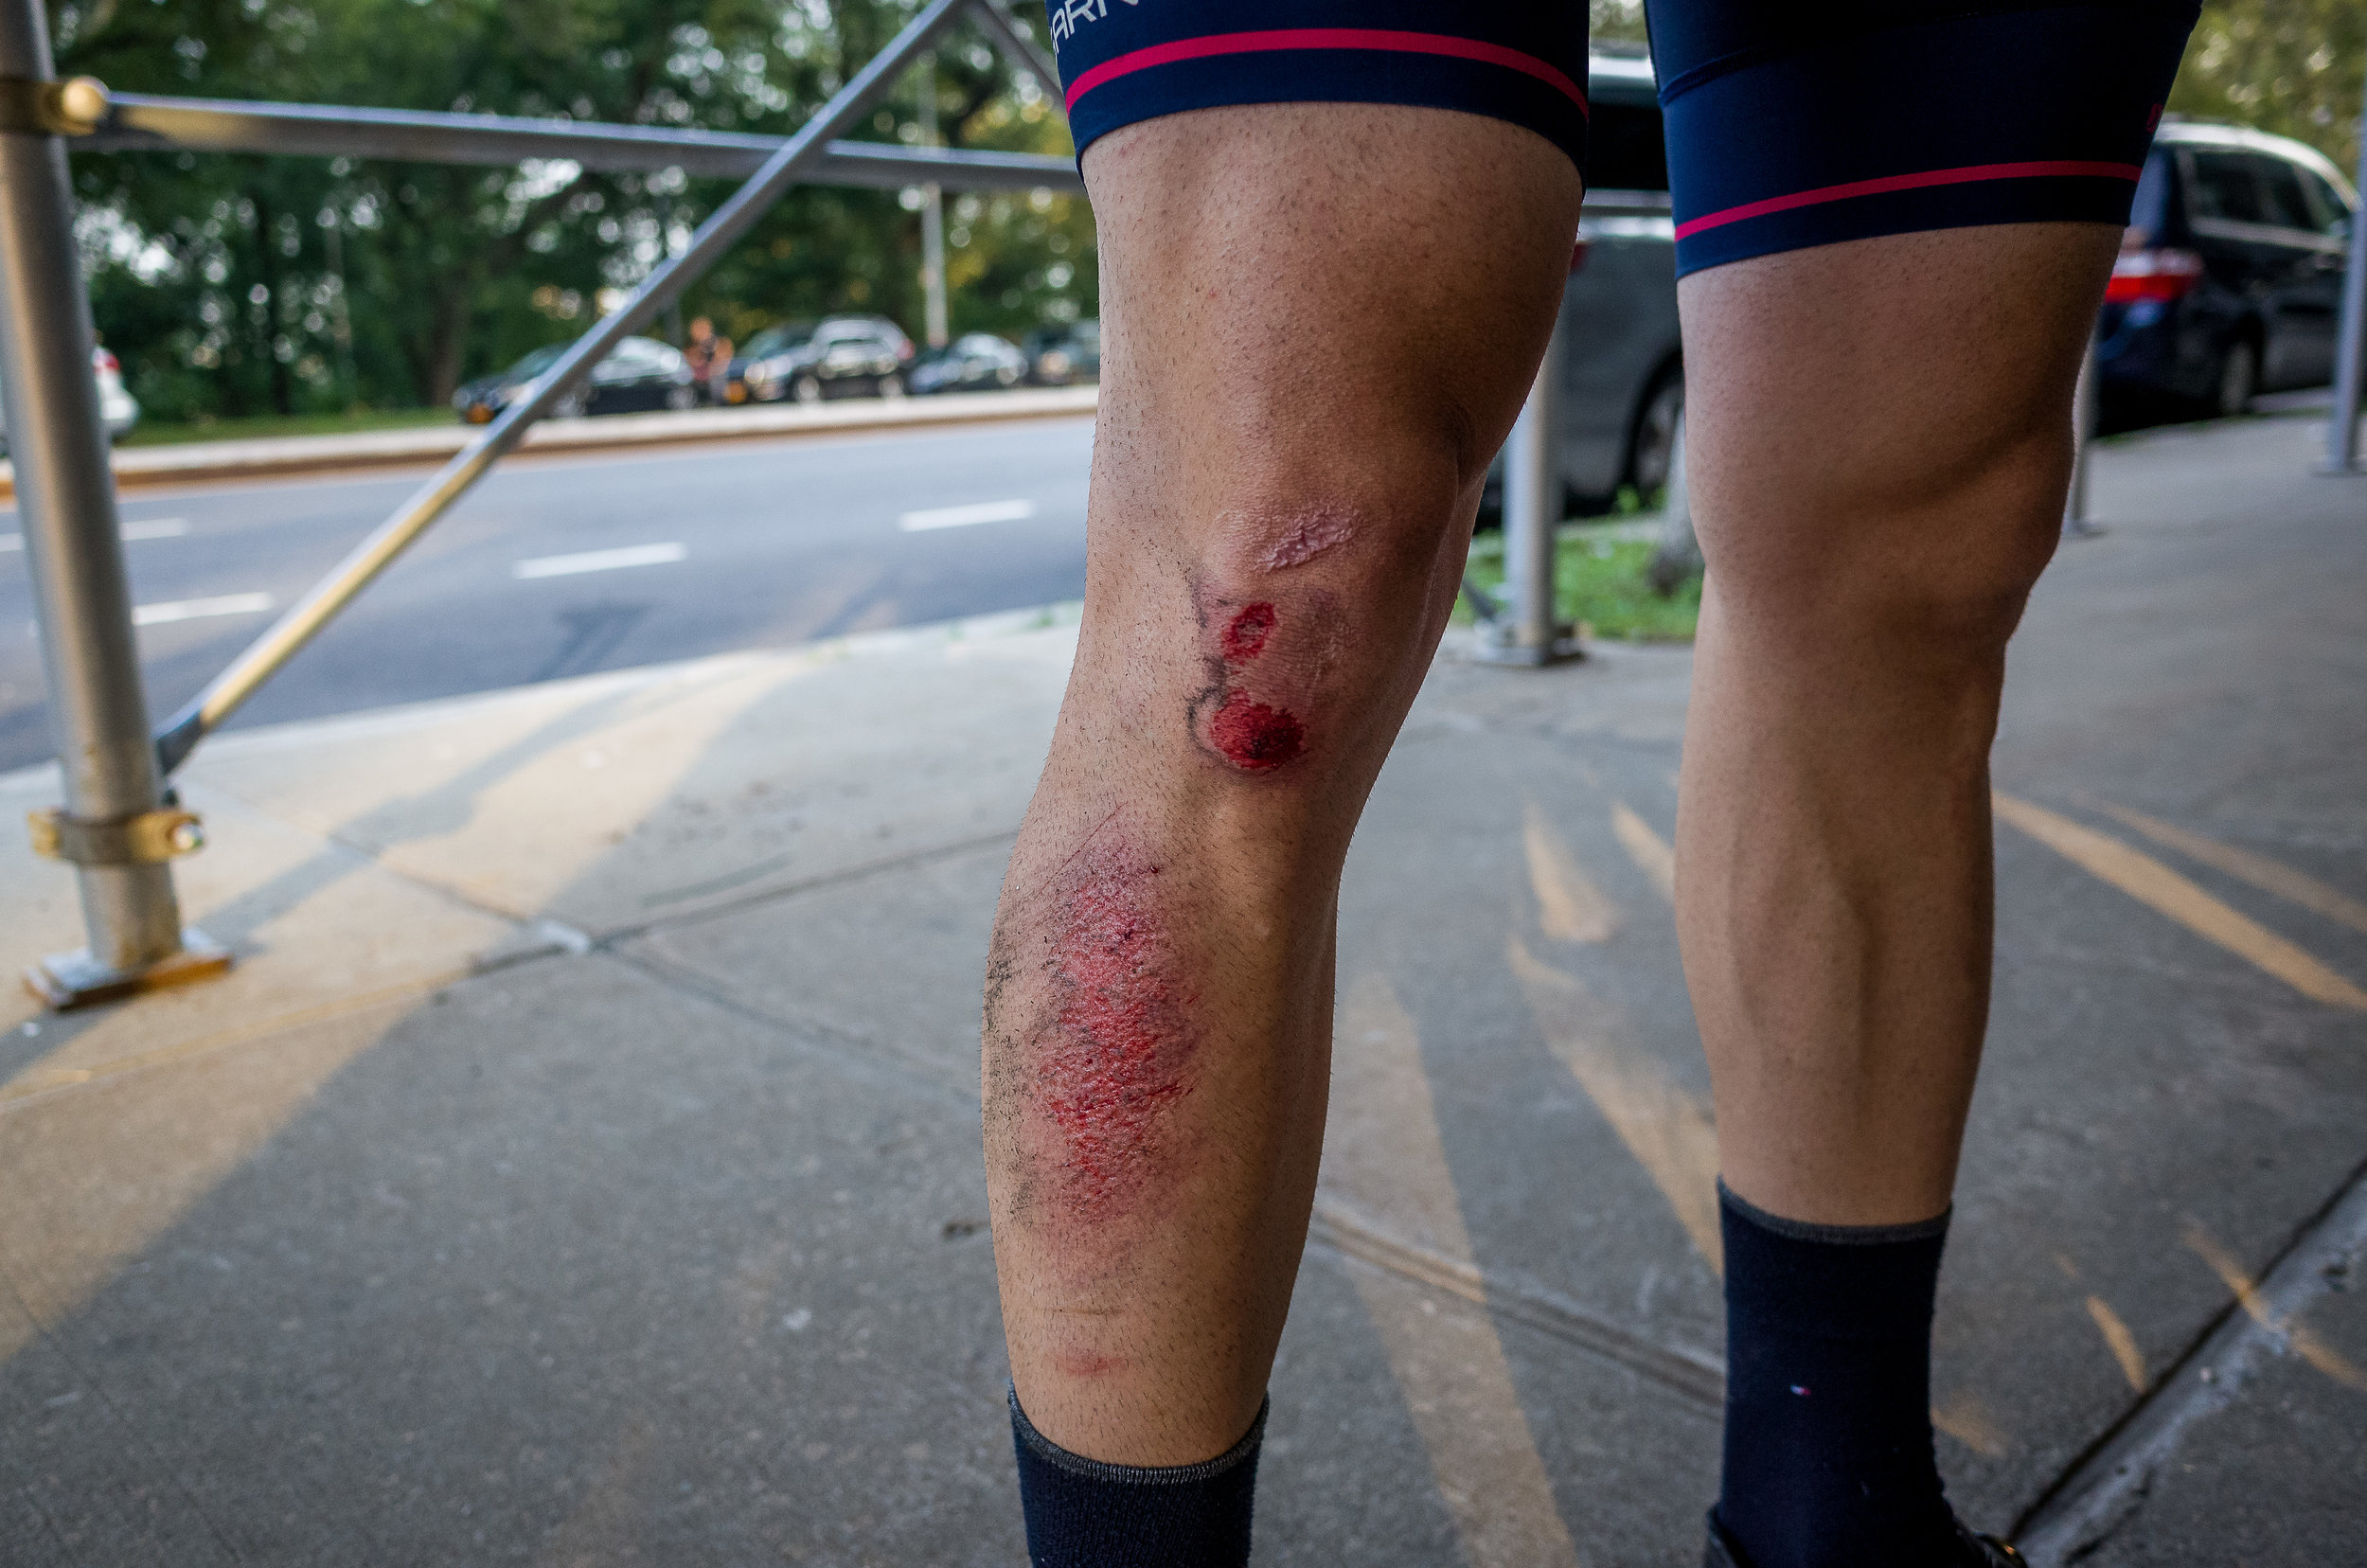 Early start + running late + freshly washed street = skin donation. Thankfully no bikes were harmed.